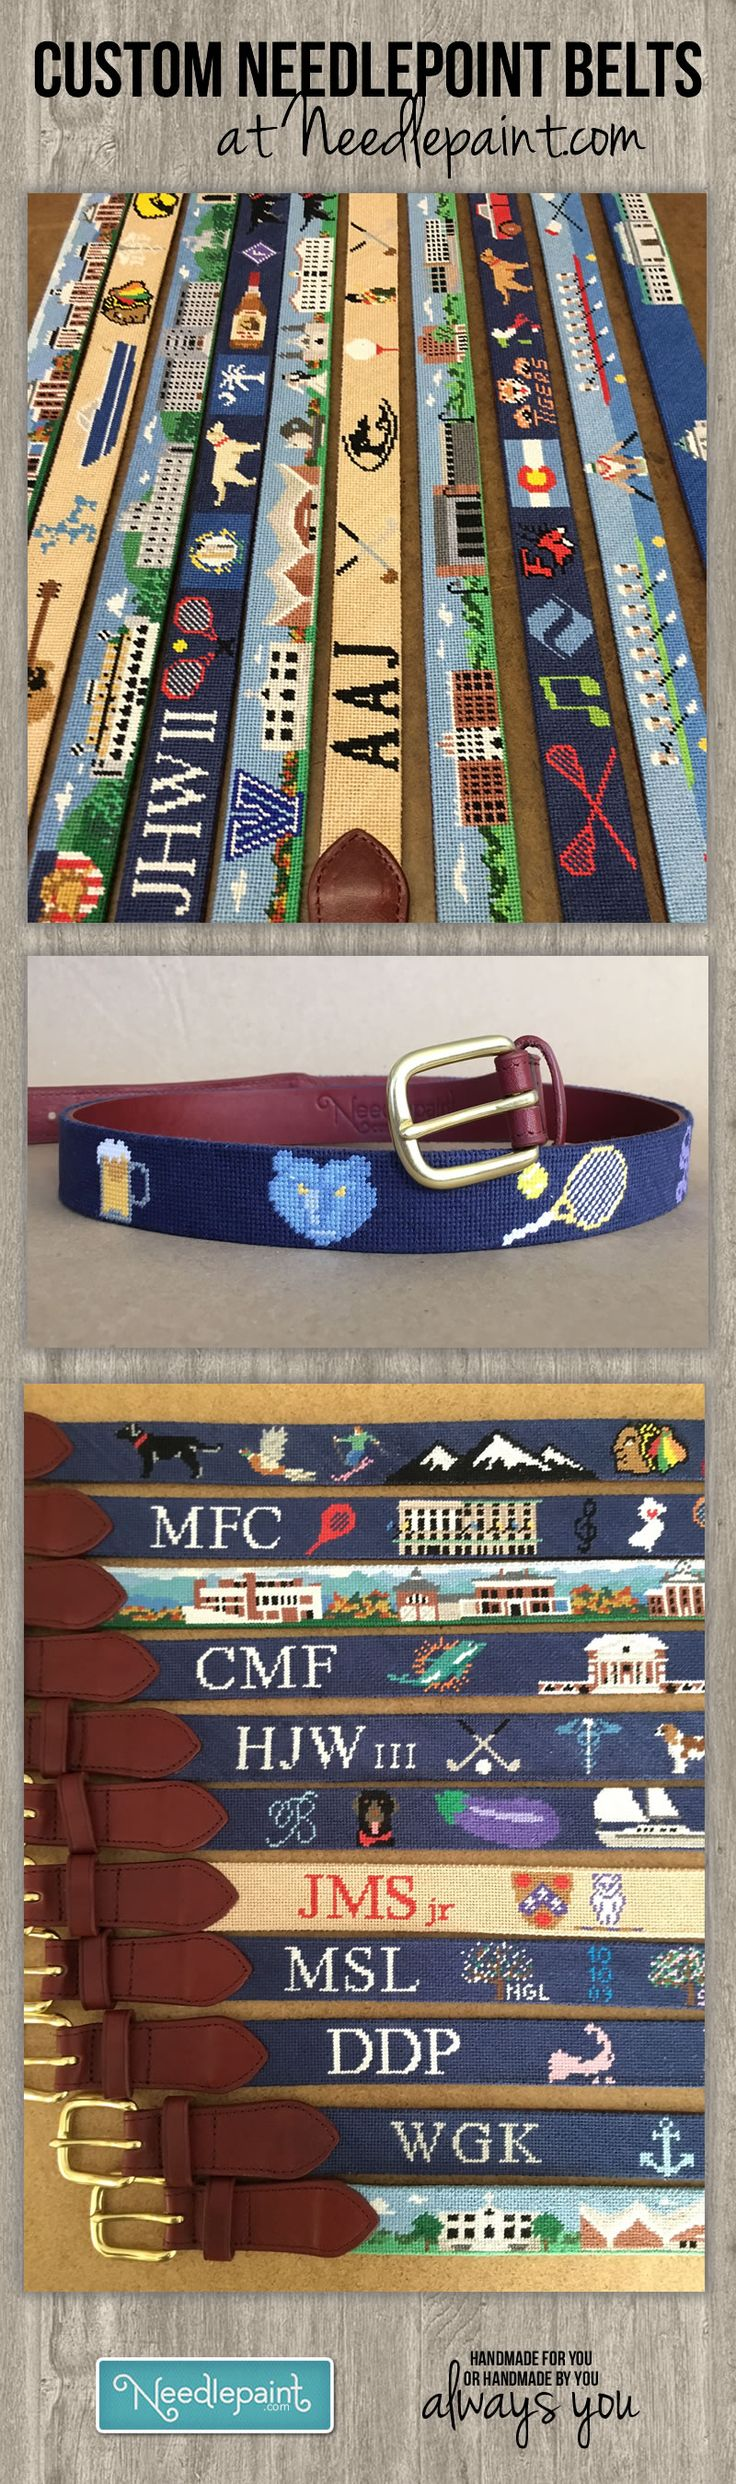 Here are some pictures of ‪Custom Needlepoint Belts‬ from our workshop taken over the holiday season.   We'd love to help you design the belt of your dreams or make an amazing gift that be talked about where ever it is worn.  www.NeedlePaint.com  #NeedlepointBelts